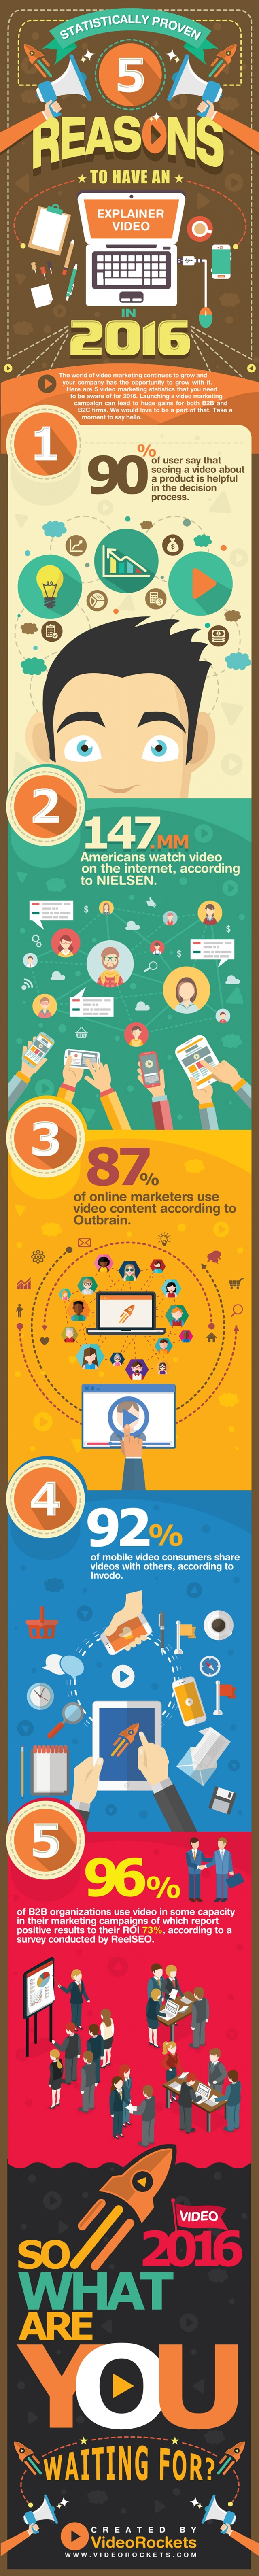 5 Reasons to Have an Explainer Video on Your Website in 2016